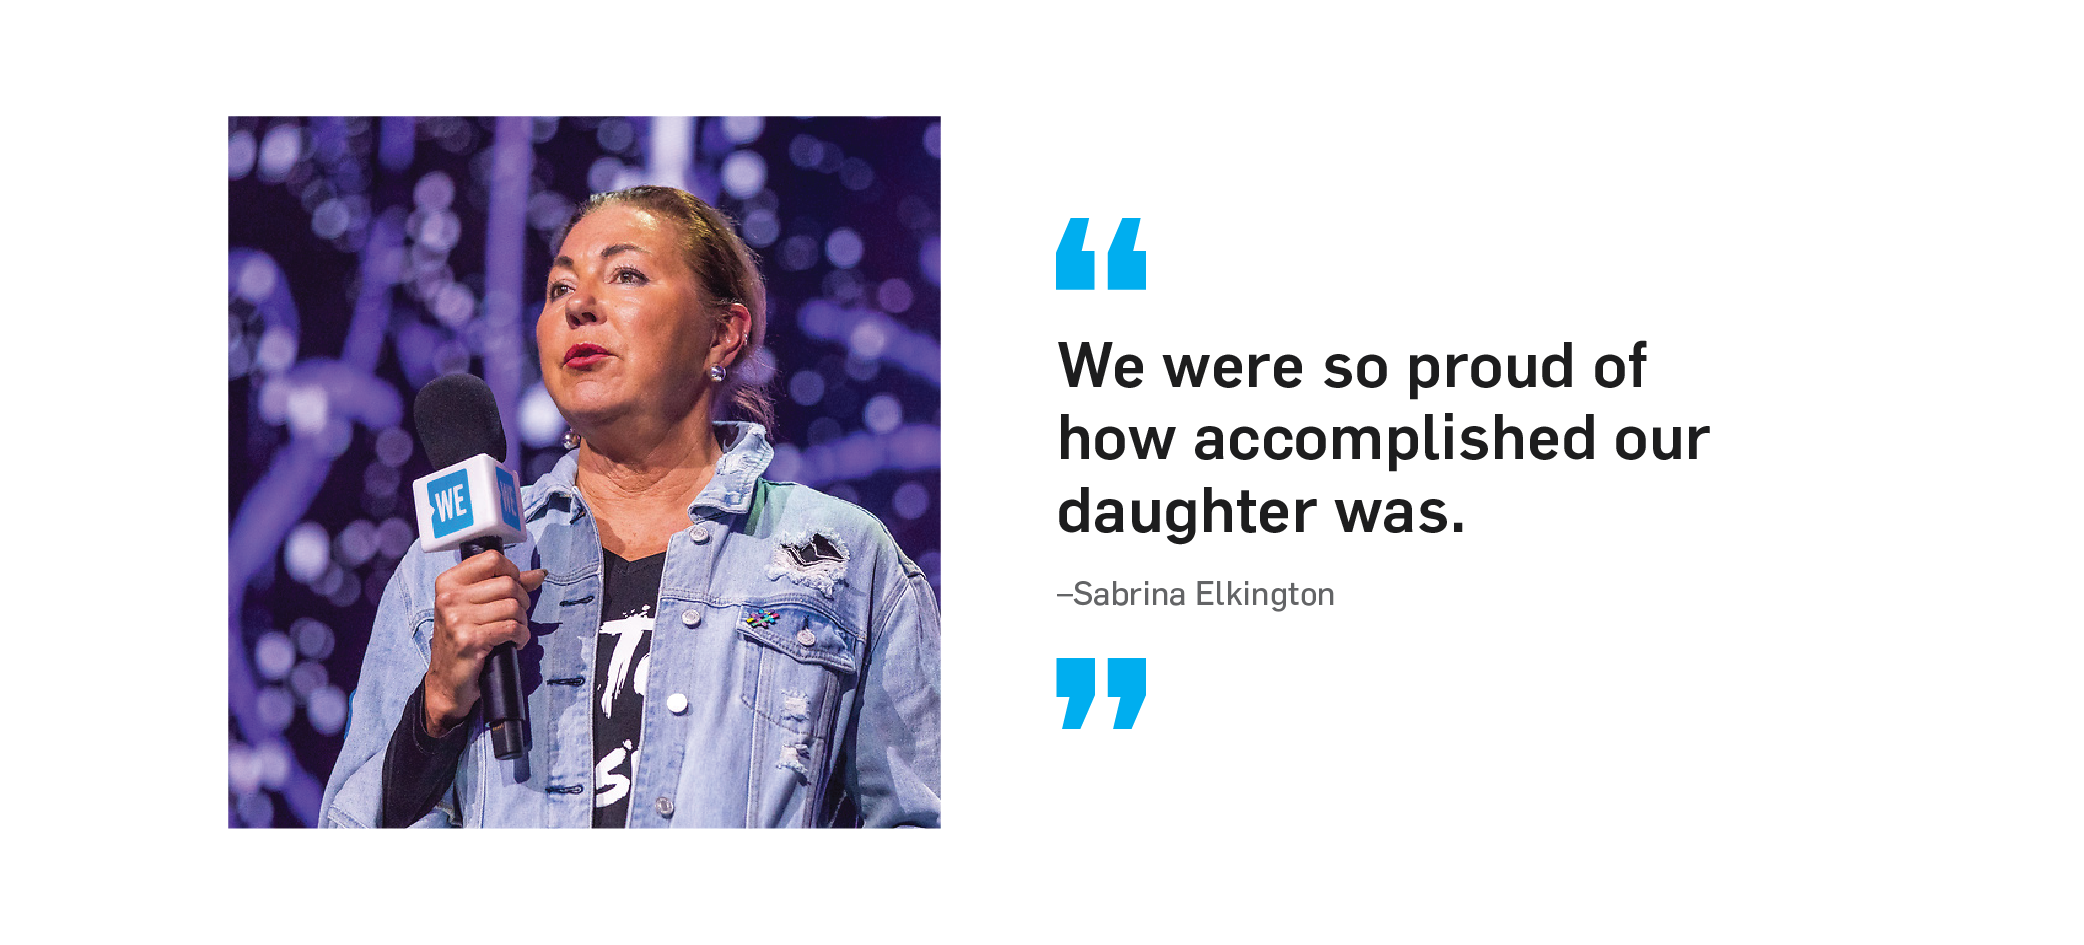 quote We were so proud of how accomplished our daughter was. unquote says Sabrina Elkington